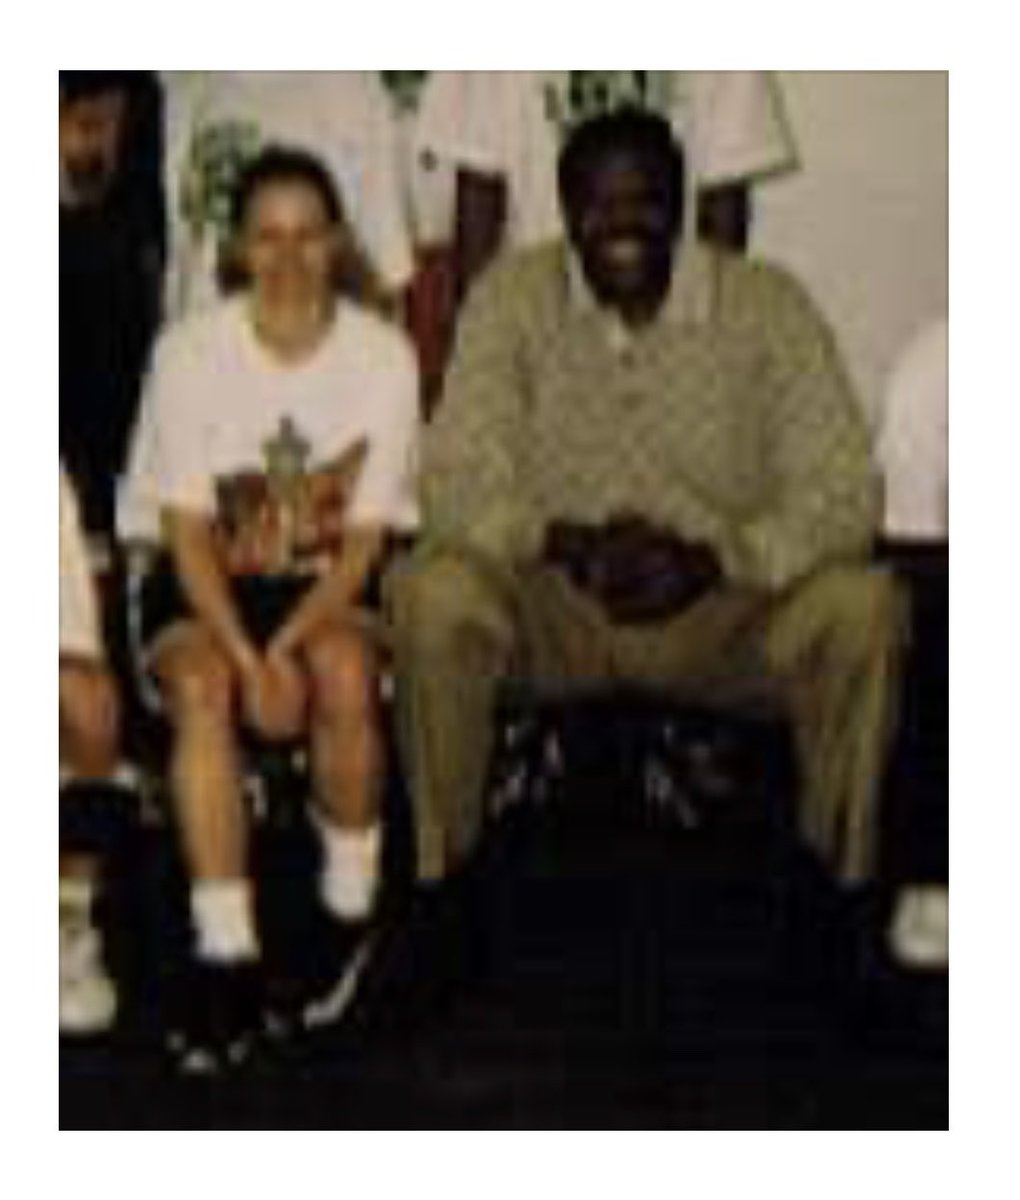 Me w/ Patrick Ewing when I worked as a kids camp coach for the Seattle SuperSonics. Only pro I got my photo w there as not too into celebs and autographs. Poor quality Polaroid w a bunch of other coaches. I asked for the photo which I never do. Get well, please. https://twitter.com/coachewing33/status/1263964626271776769…pic.twitter.com/x36v2tgcnz